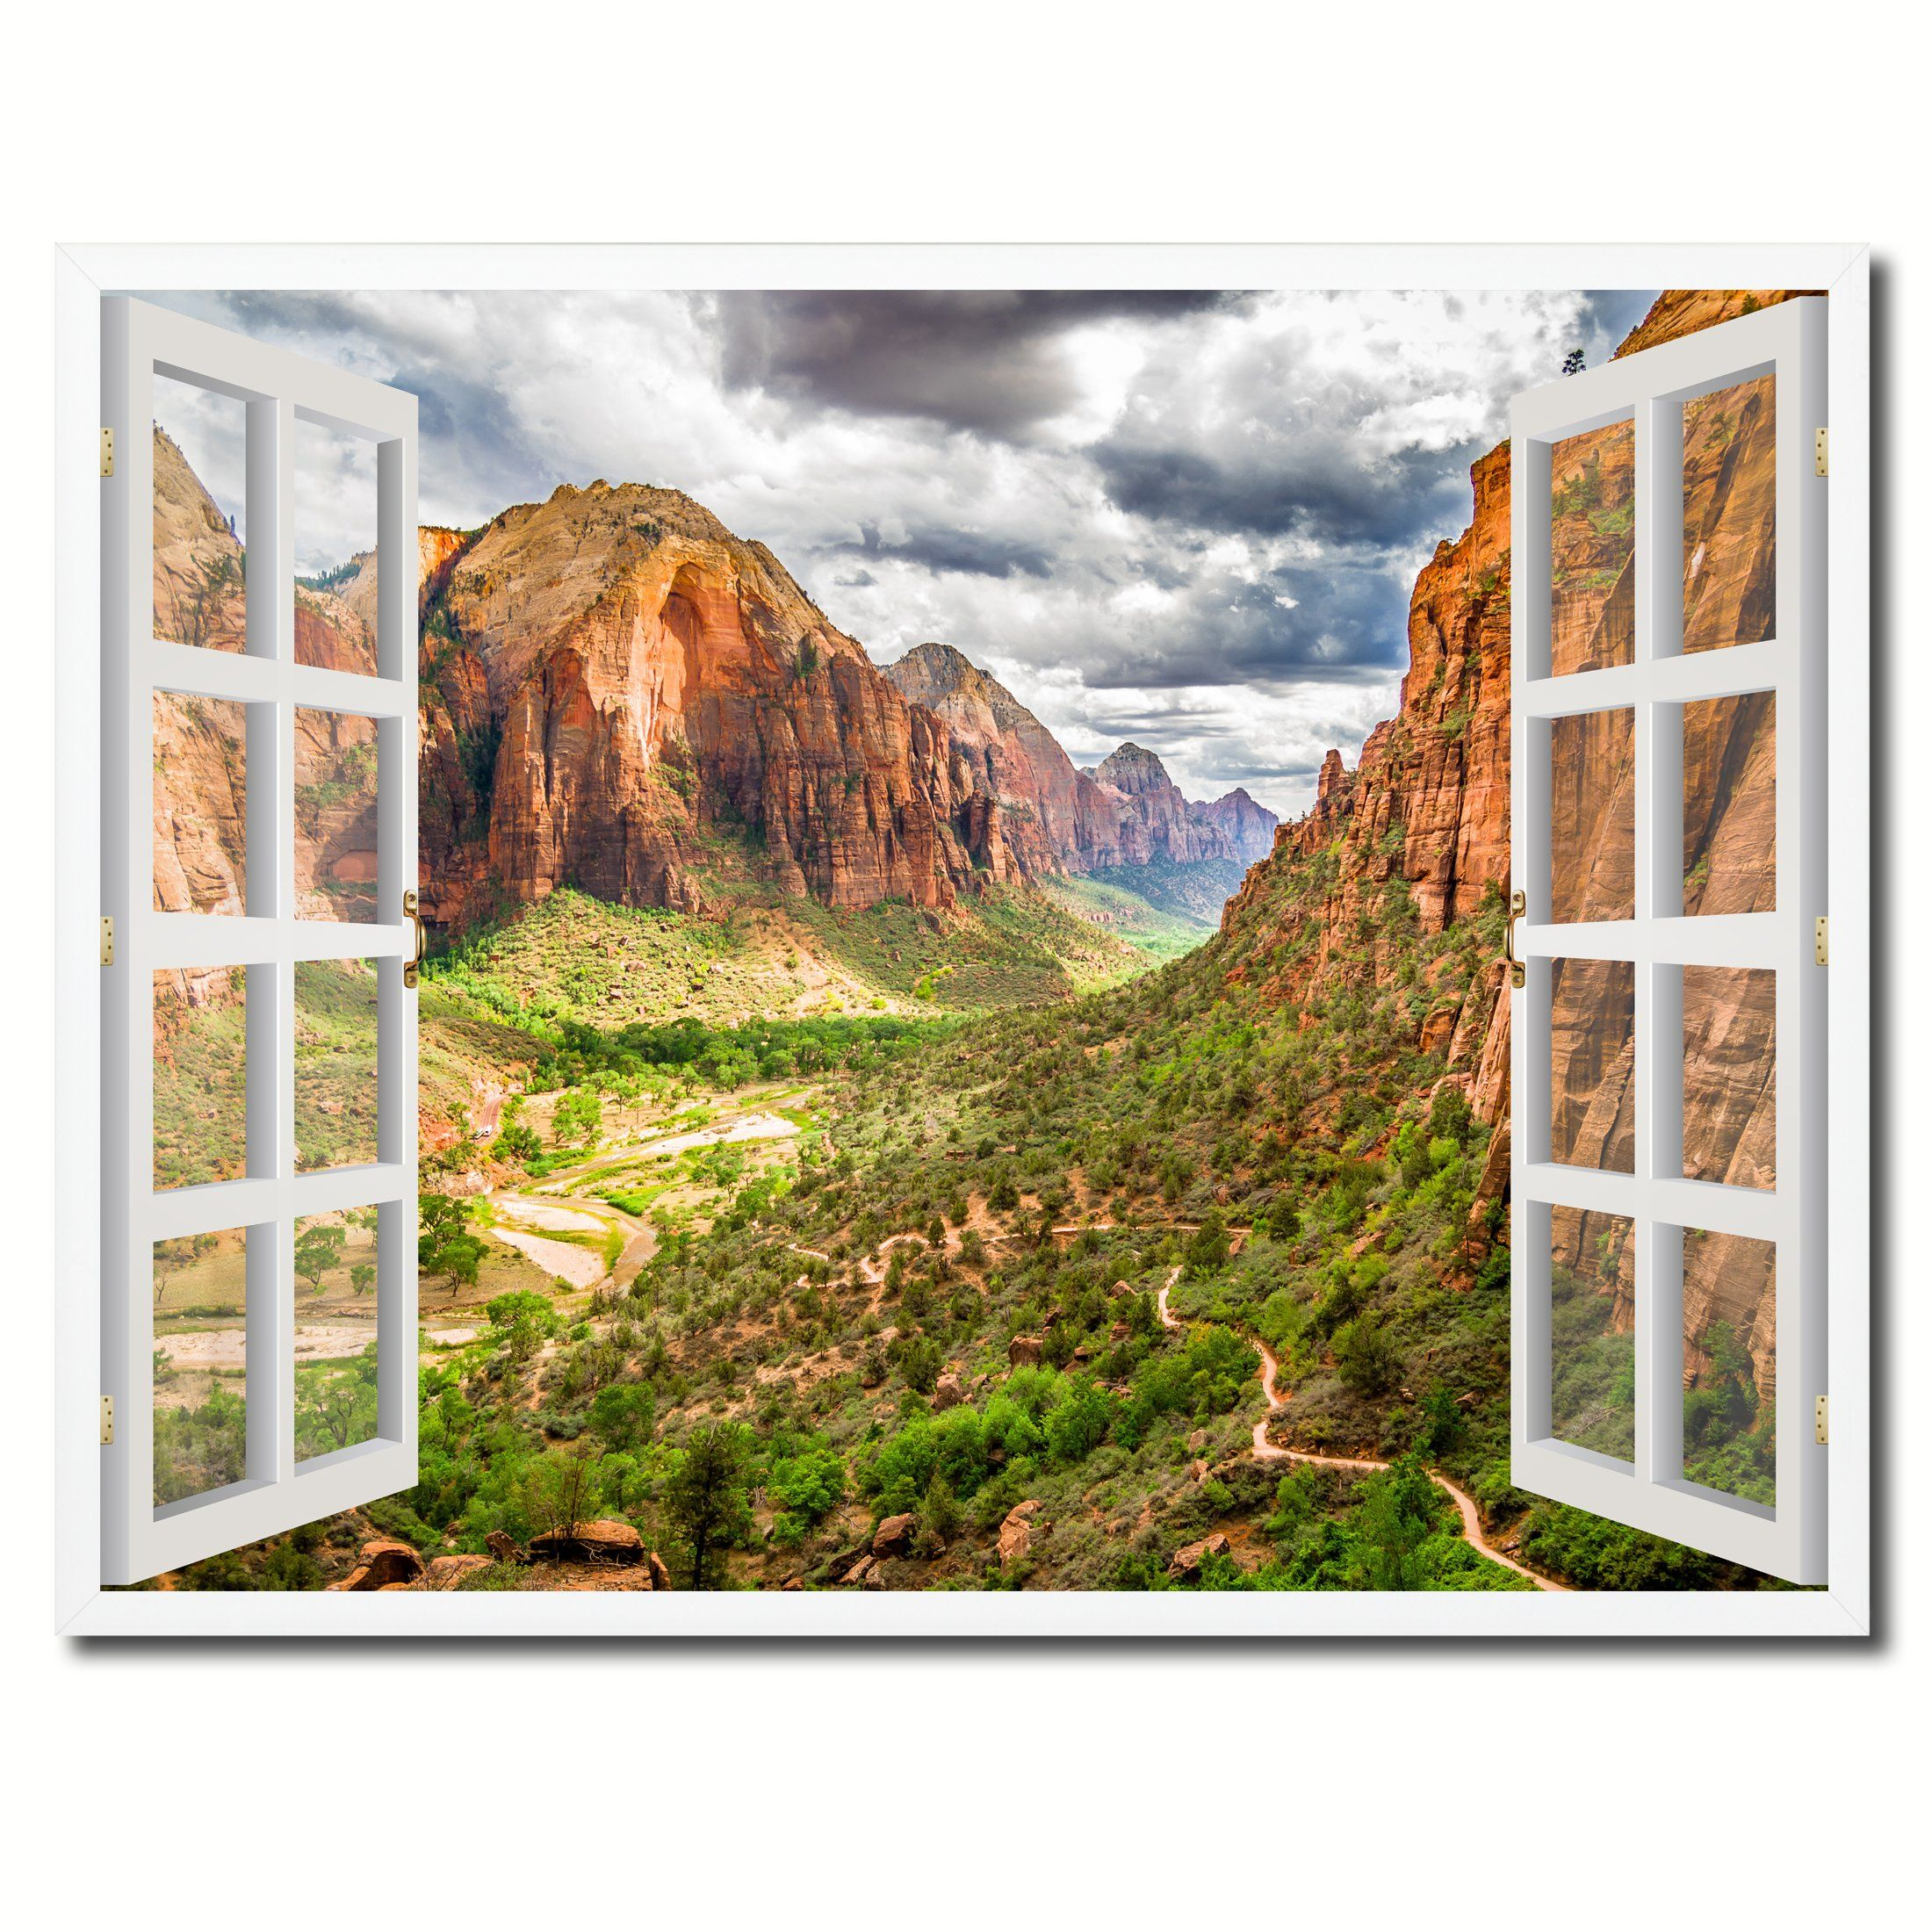 Landscape Zion National Park Picture French Window Framed Canvas ...